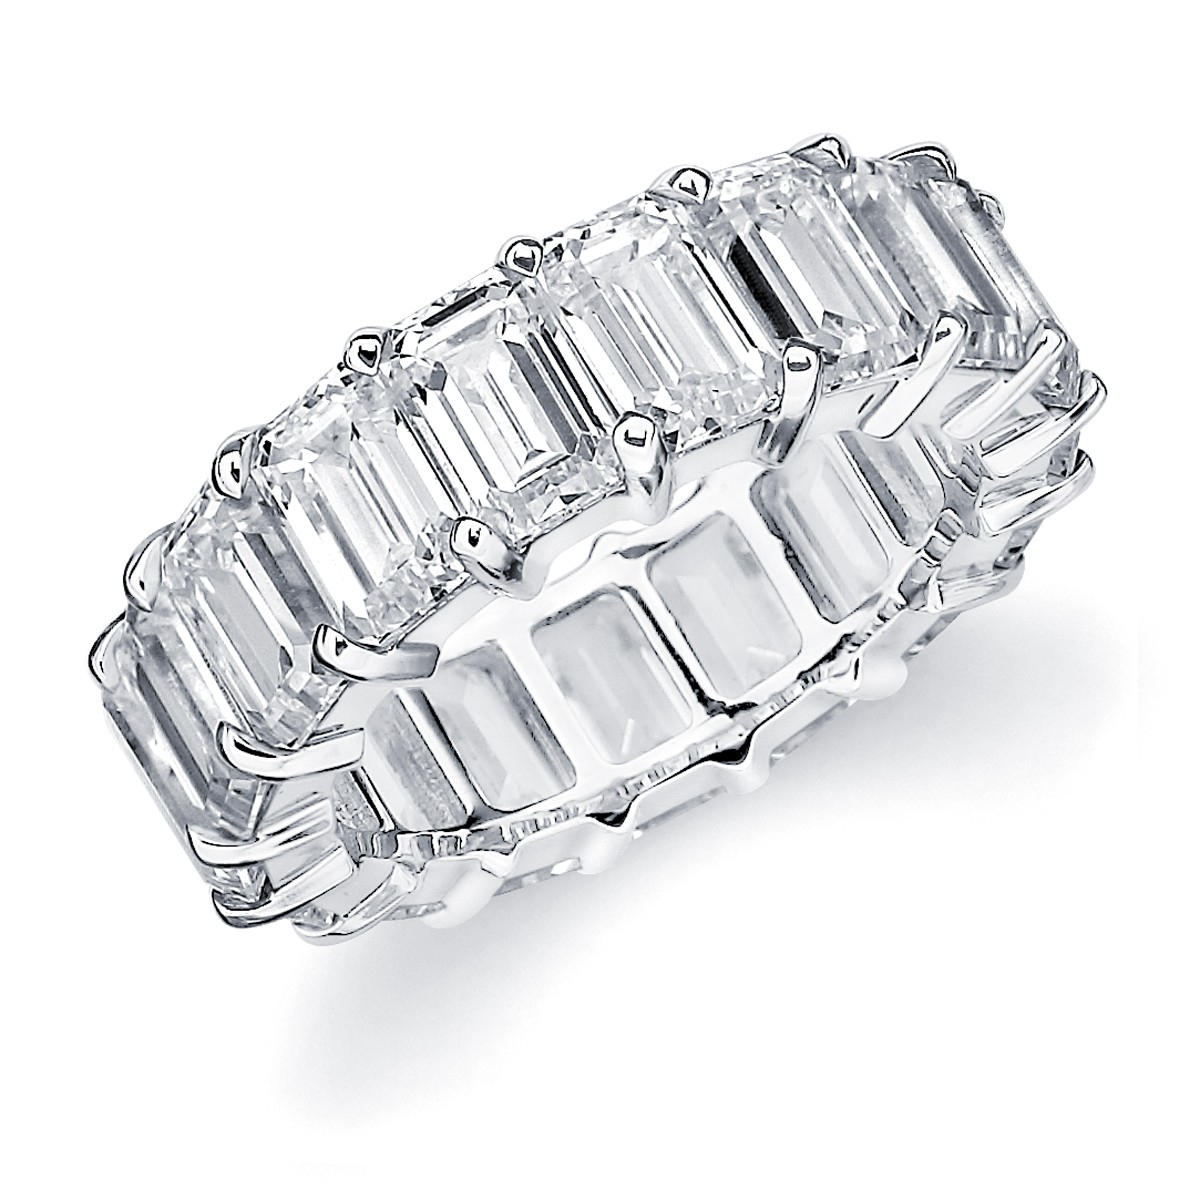 Emerald Cut Diamond Wedding Bands | Emerald Cut Eternity Band Within Most Recent Bar Set Round Brilliant And Emerald Cut Diamond Wedding Bands (View 15 of 25)